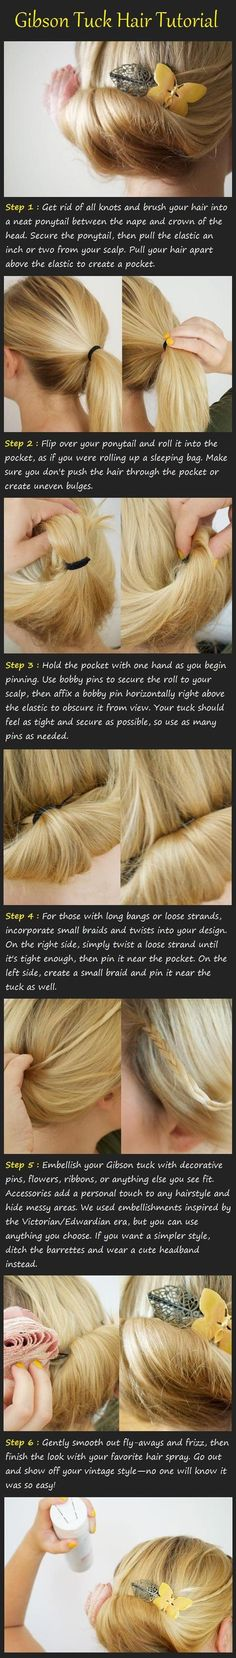 Long Hair Styles How To | 10/337 | | Tutorials, Videos, Pictures for Long Hairstyles |